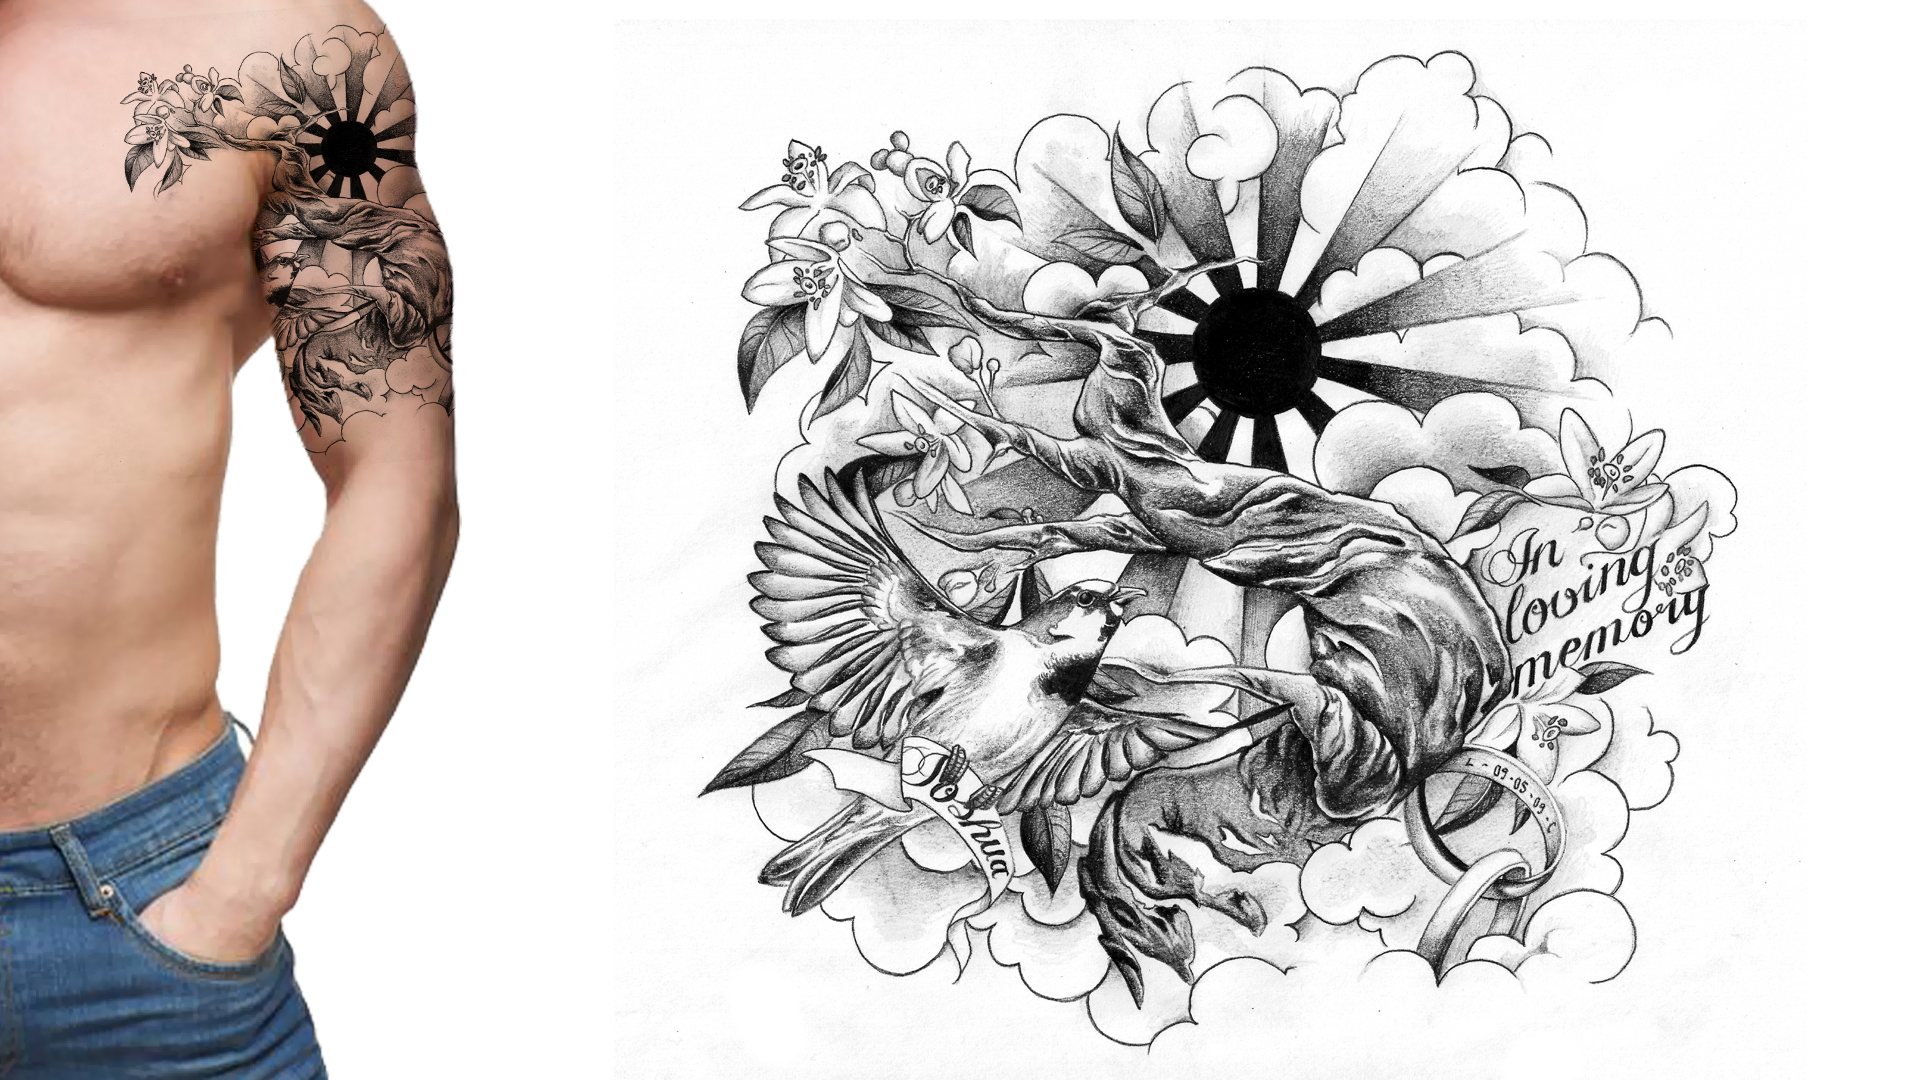 Tattoo design picture -  Sleeve Tattoo Design Memorial Tattoo